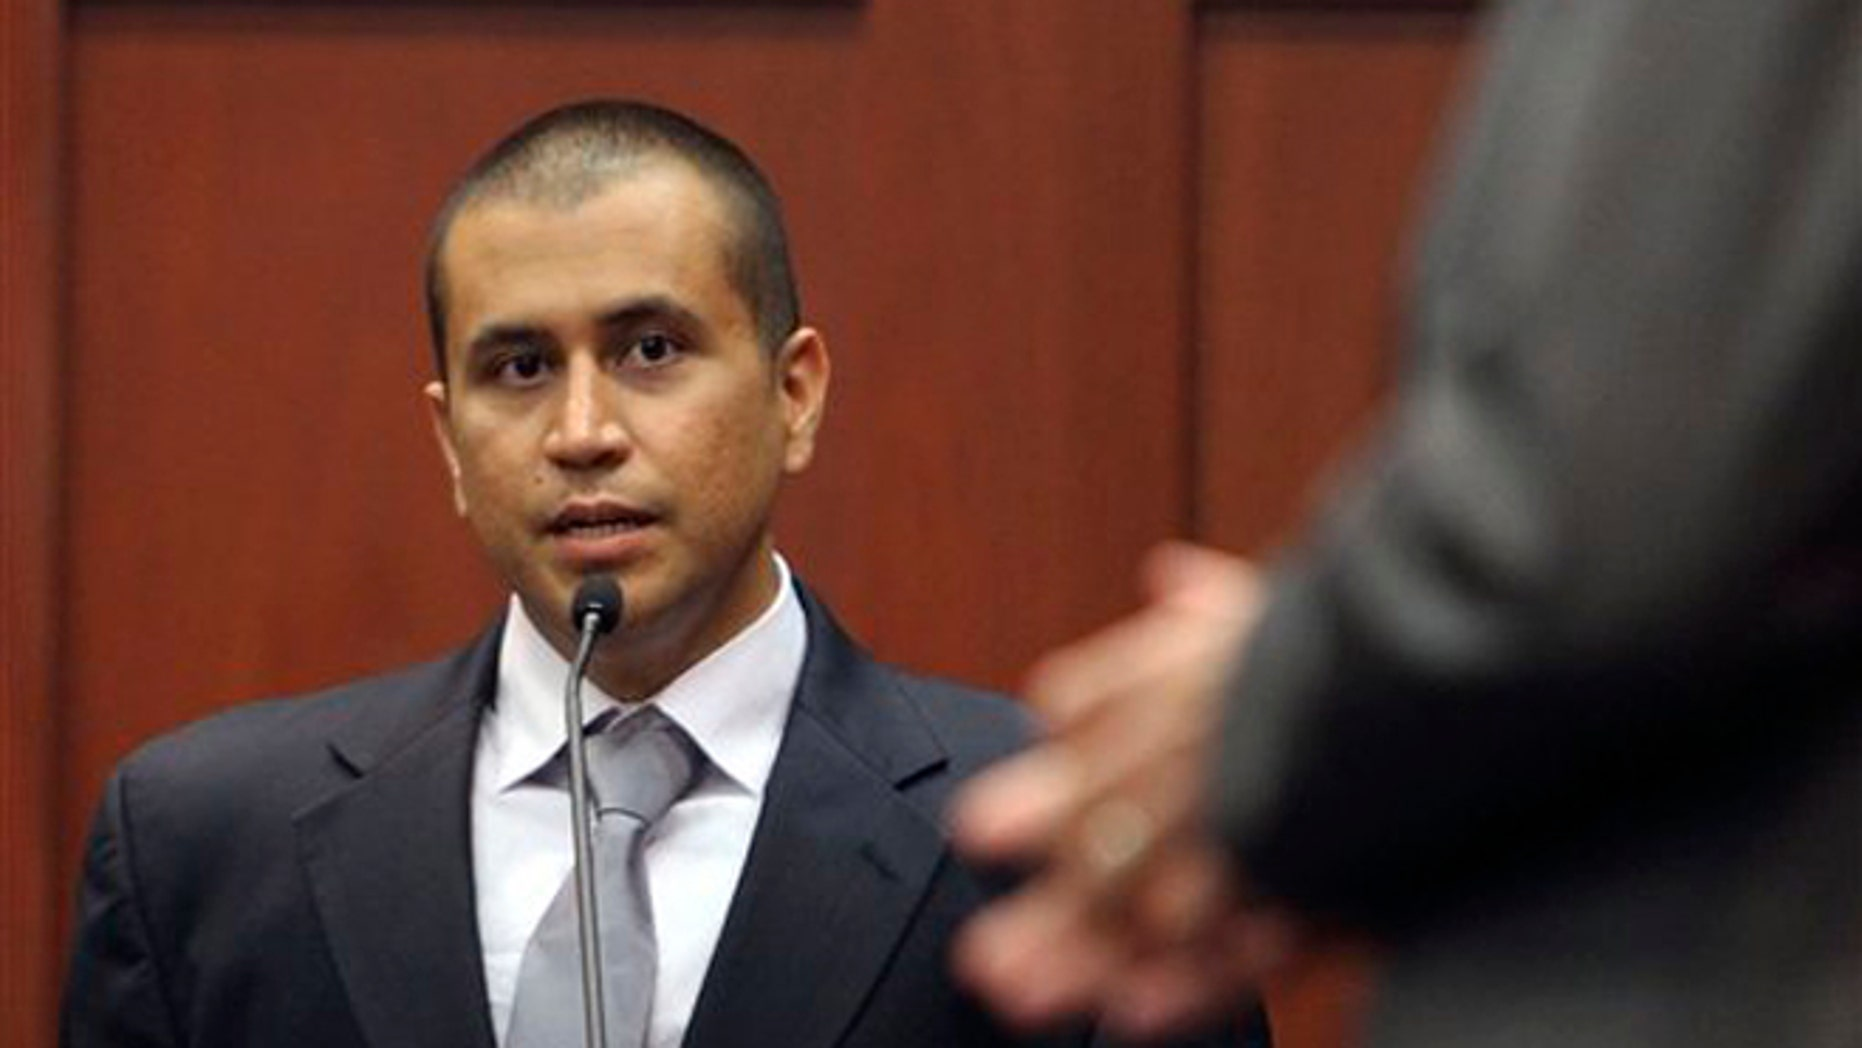 April 20, 2012: In this file photo, George Zimmerman, left, answers a question from attorney Mark O'Mara during a bond hearing in Sanford, Fla. (AP)